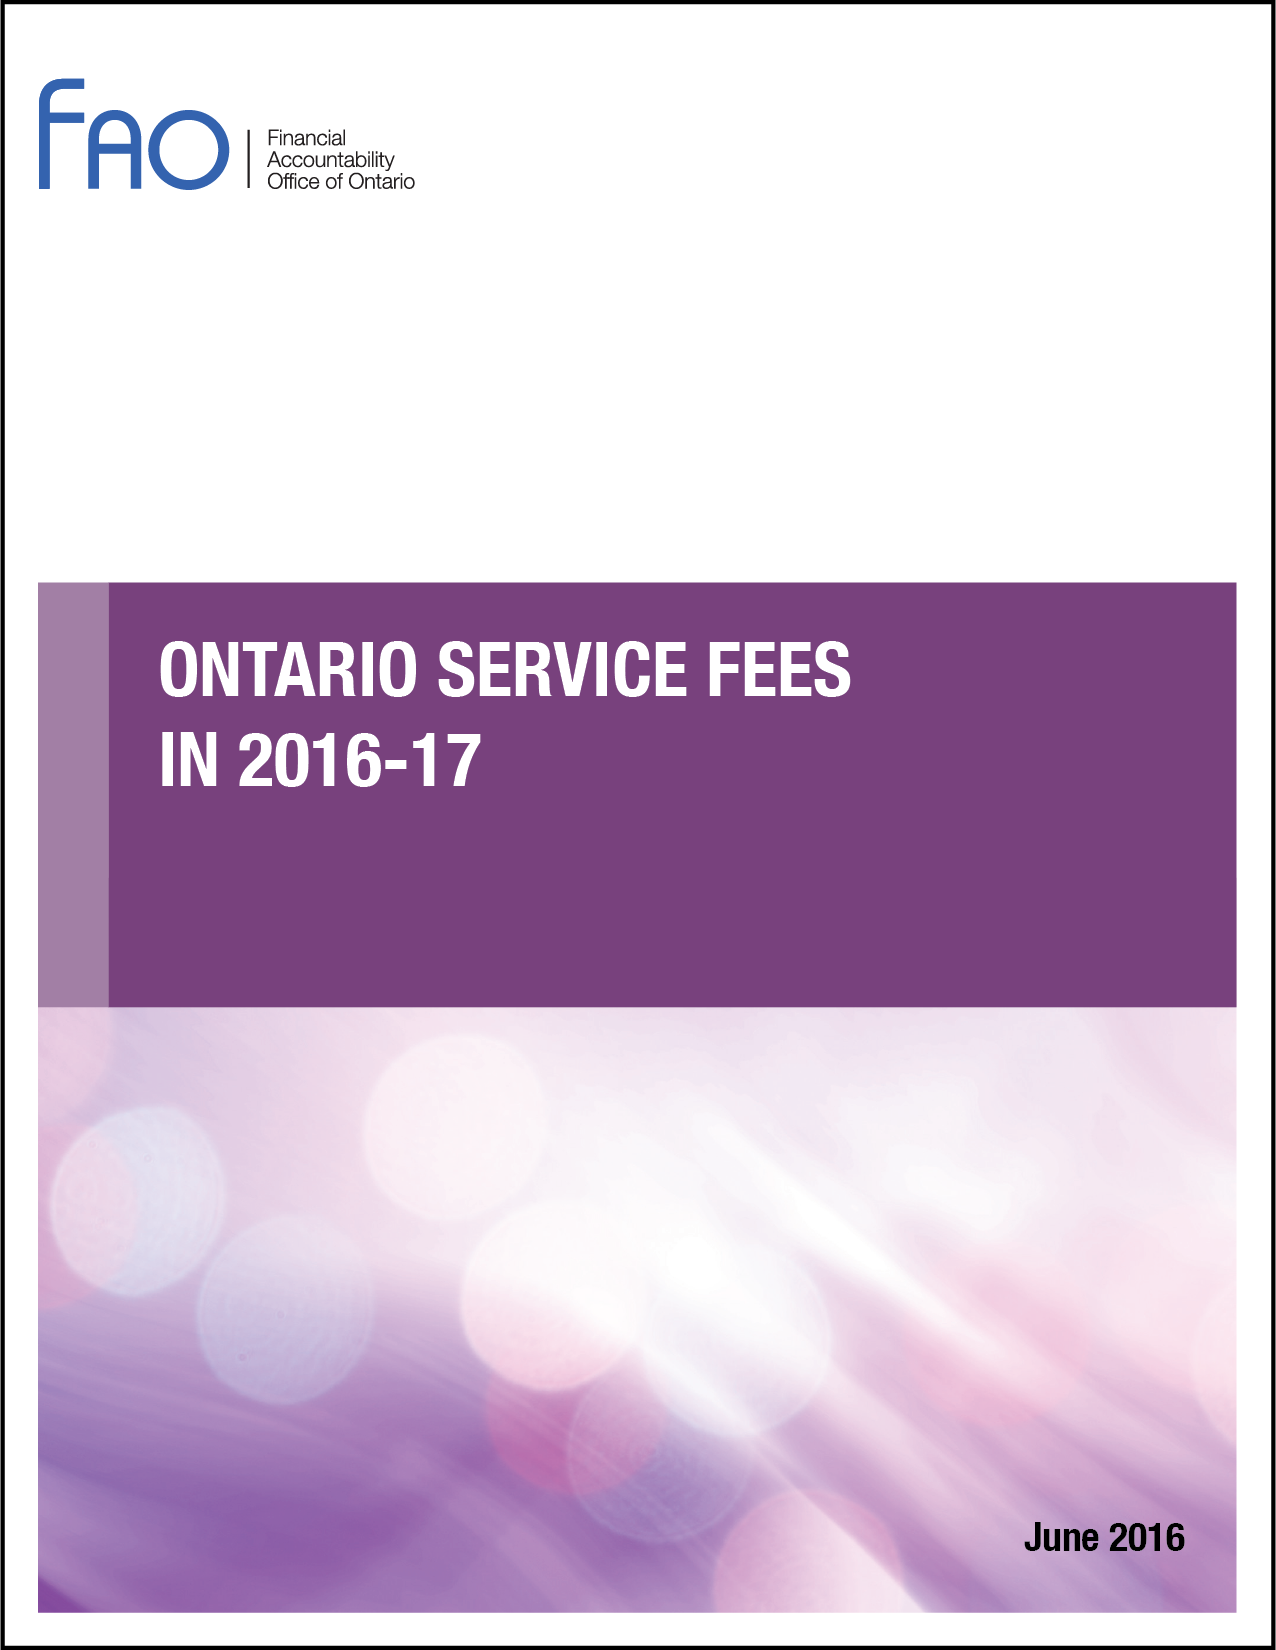 Ontario Service Fees in 2016-17